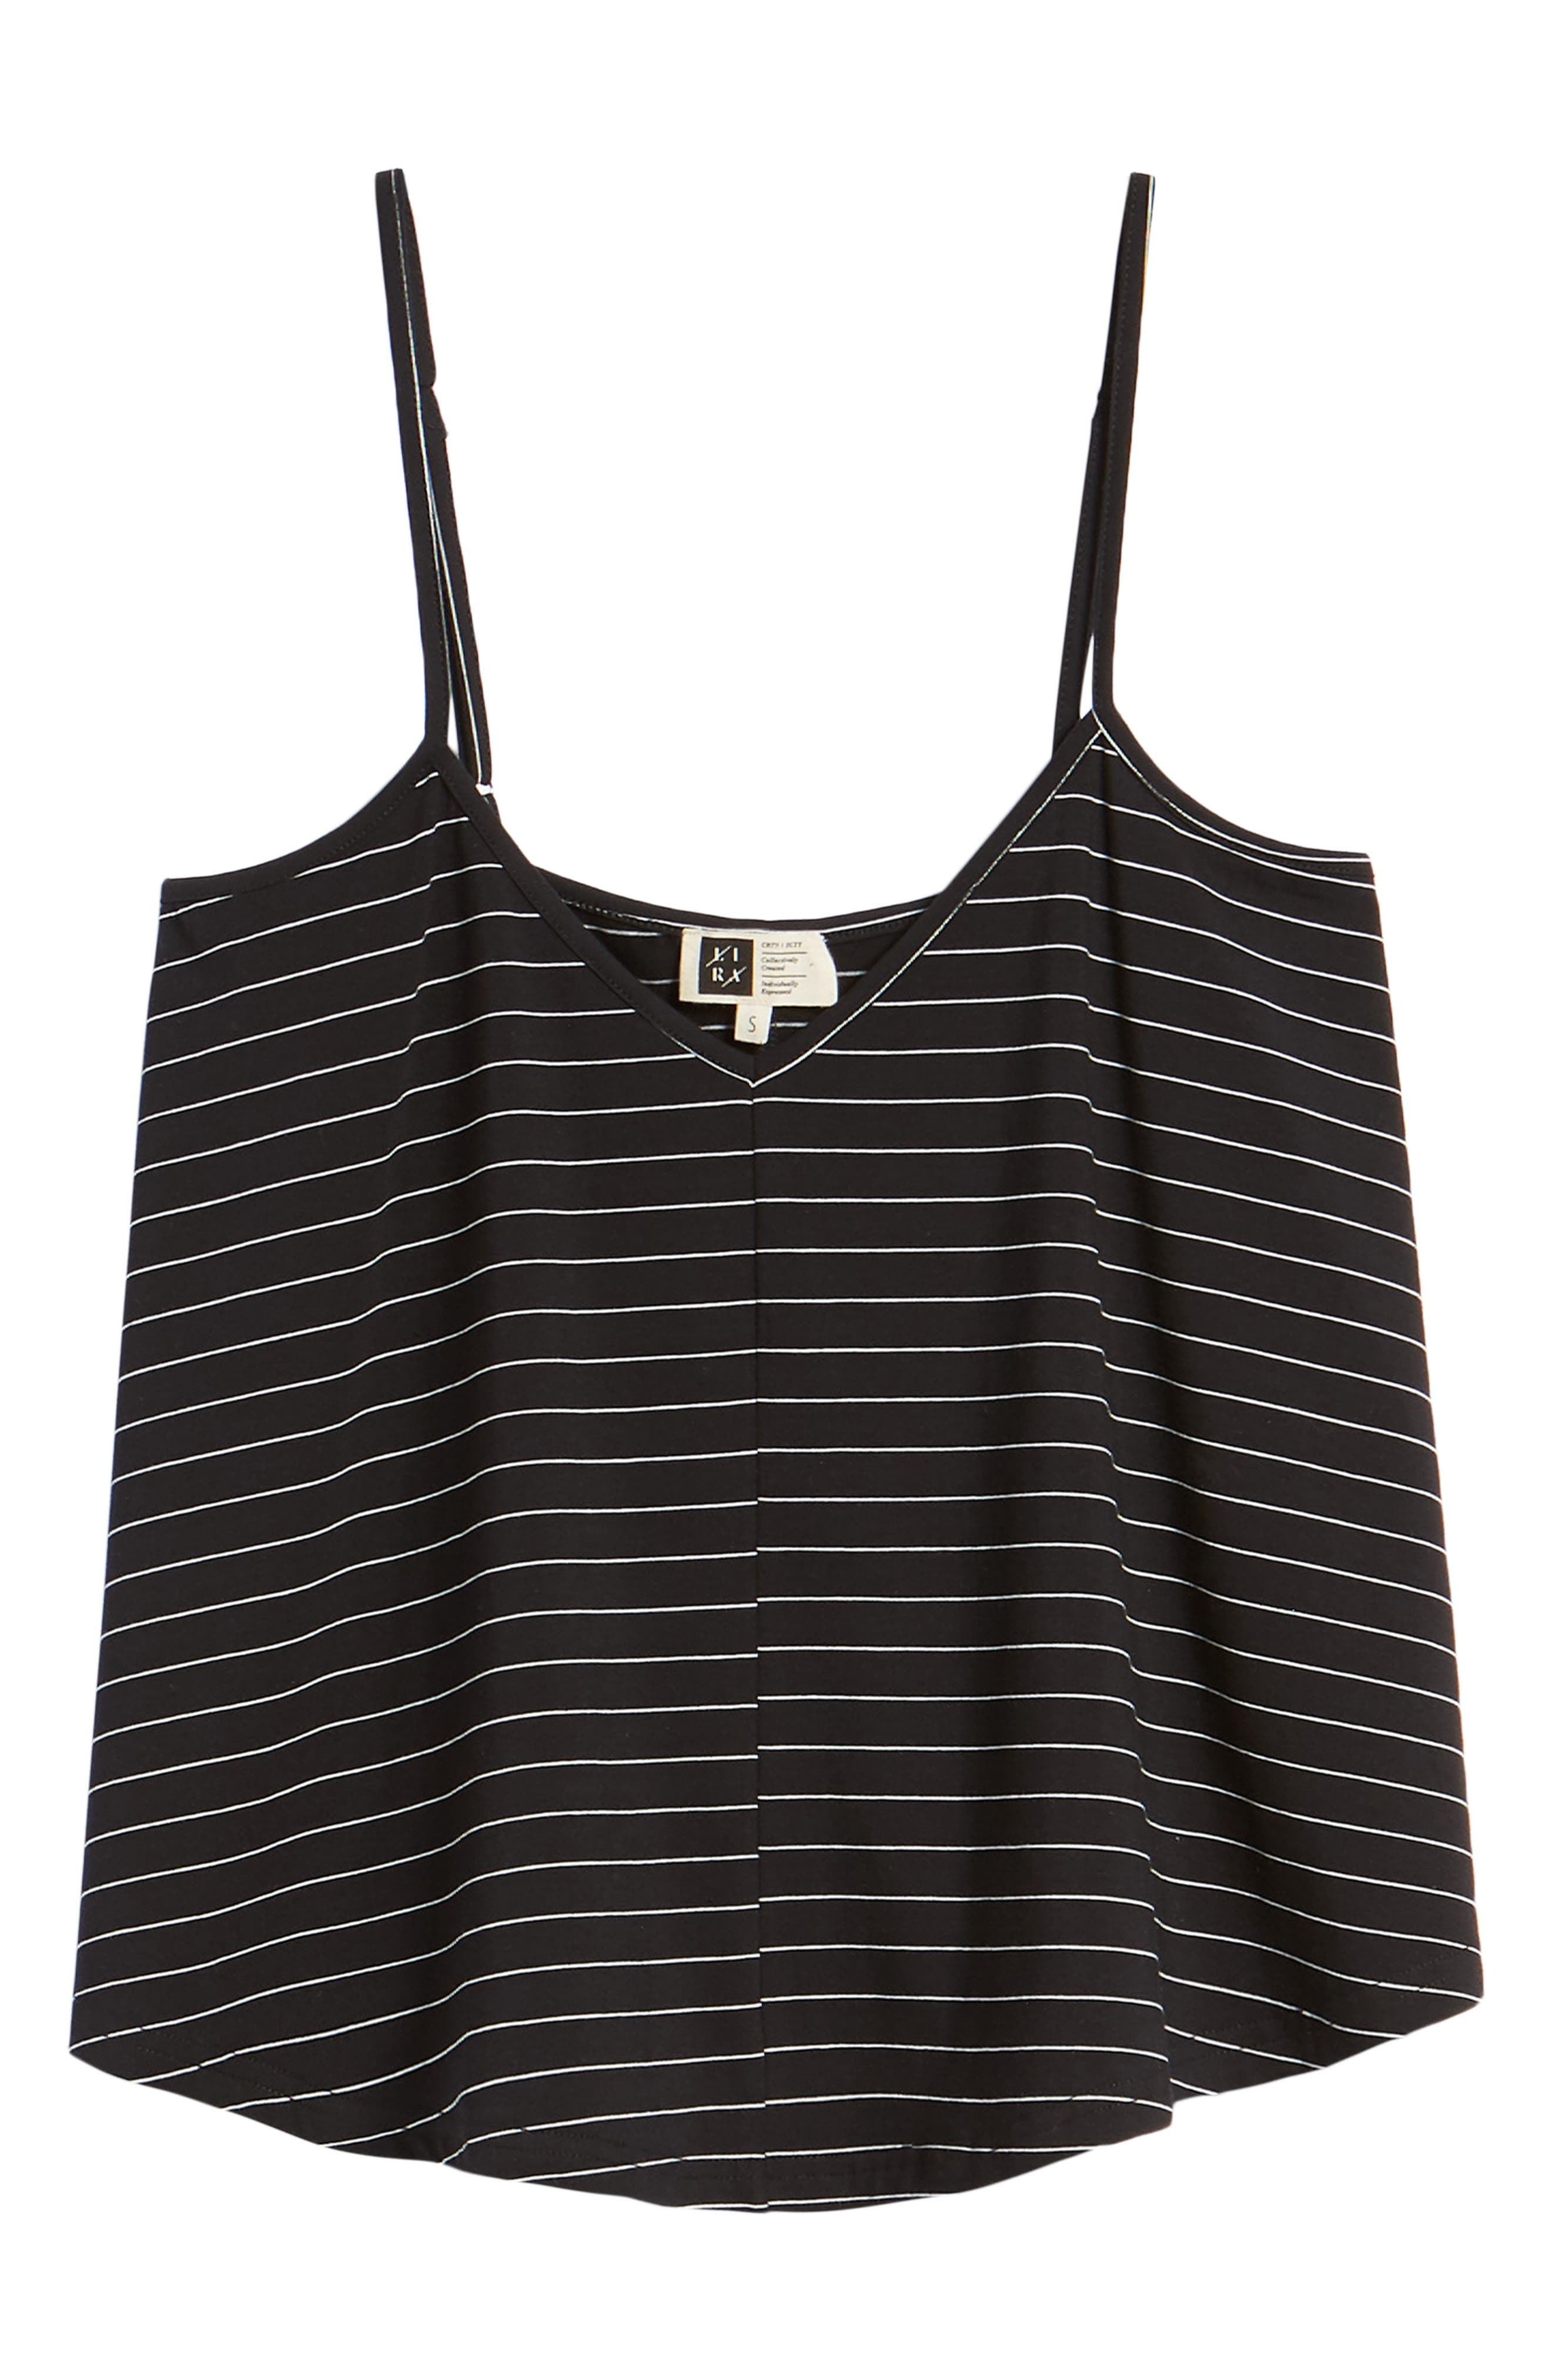 Harlow Stripe Camisole Top,                             Alternate thumbnail 7, color,                             001